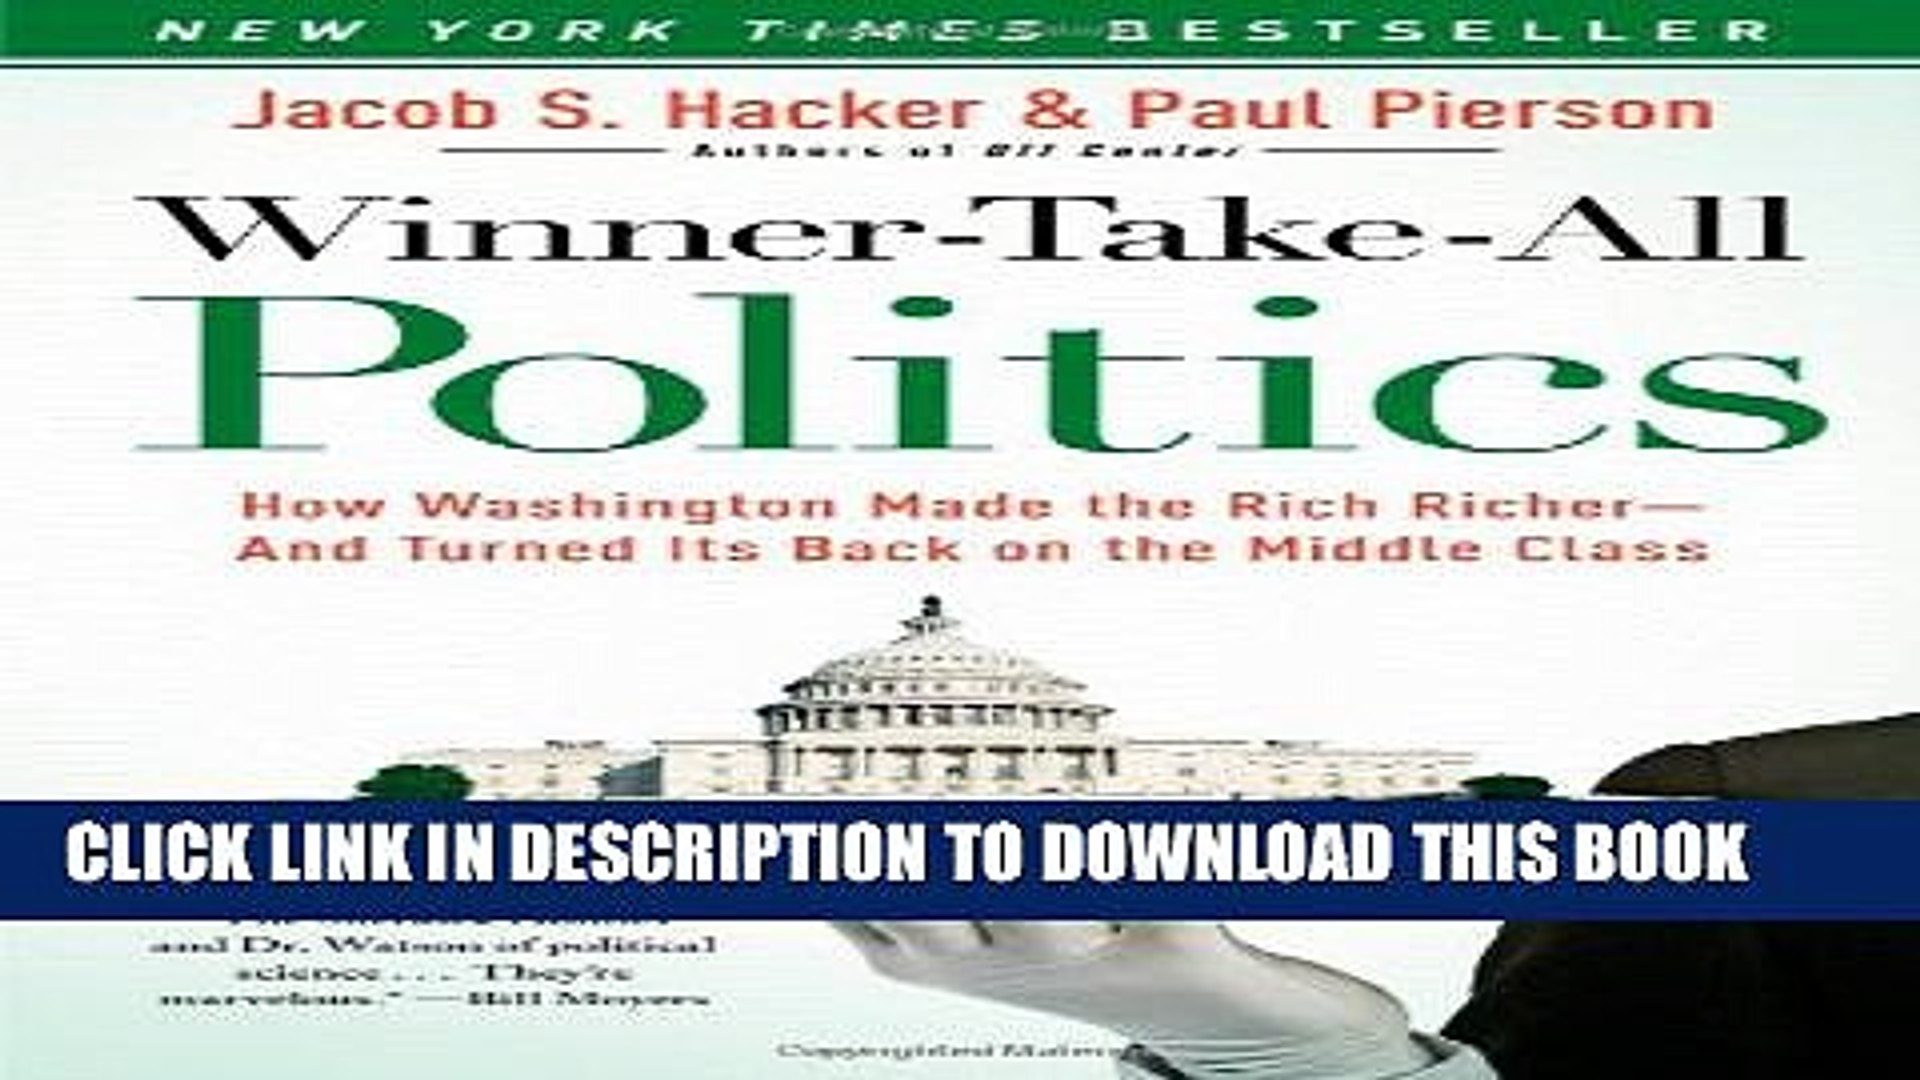 [PDF] Winner-Take-All Politics: How Washington Made the Rich Richer--and Turned Its Back on the